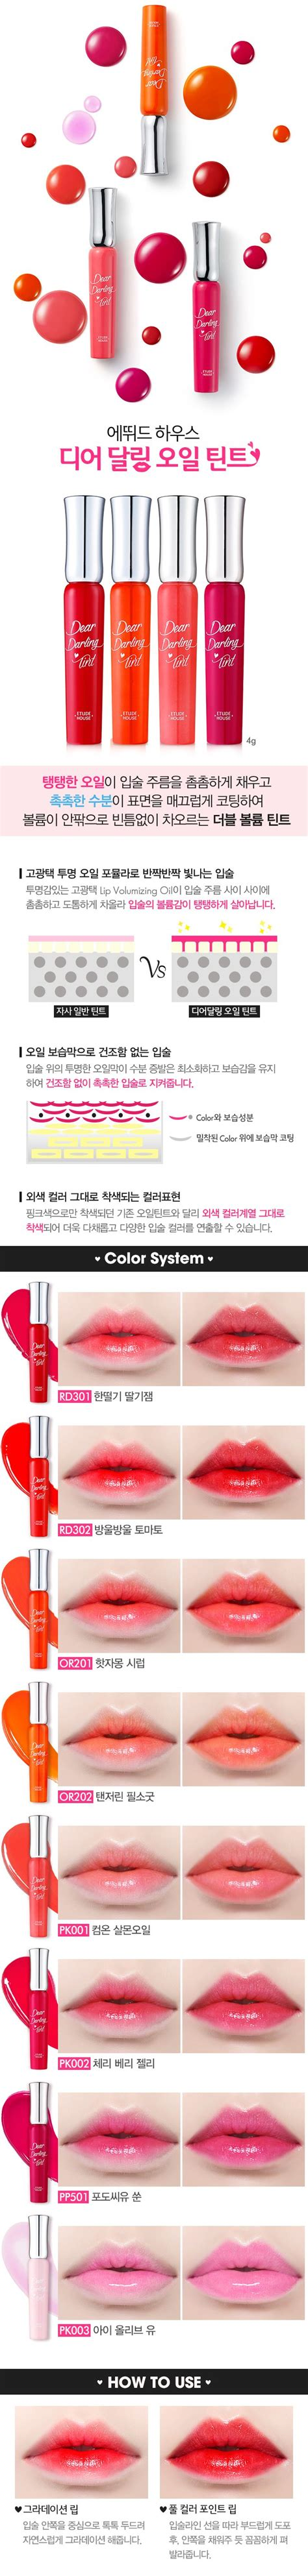 Lip Tint Etude Indonesia etude house dear lip tint korean cosmetic